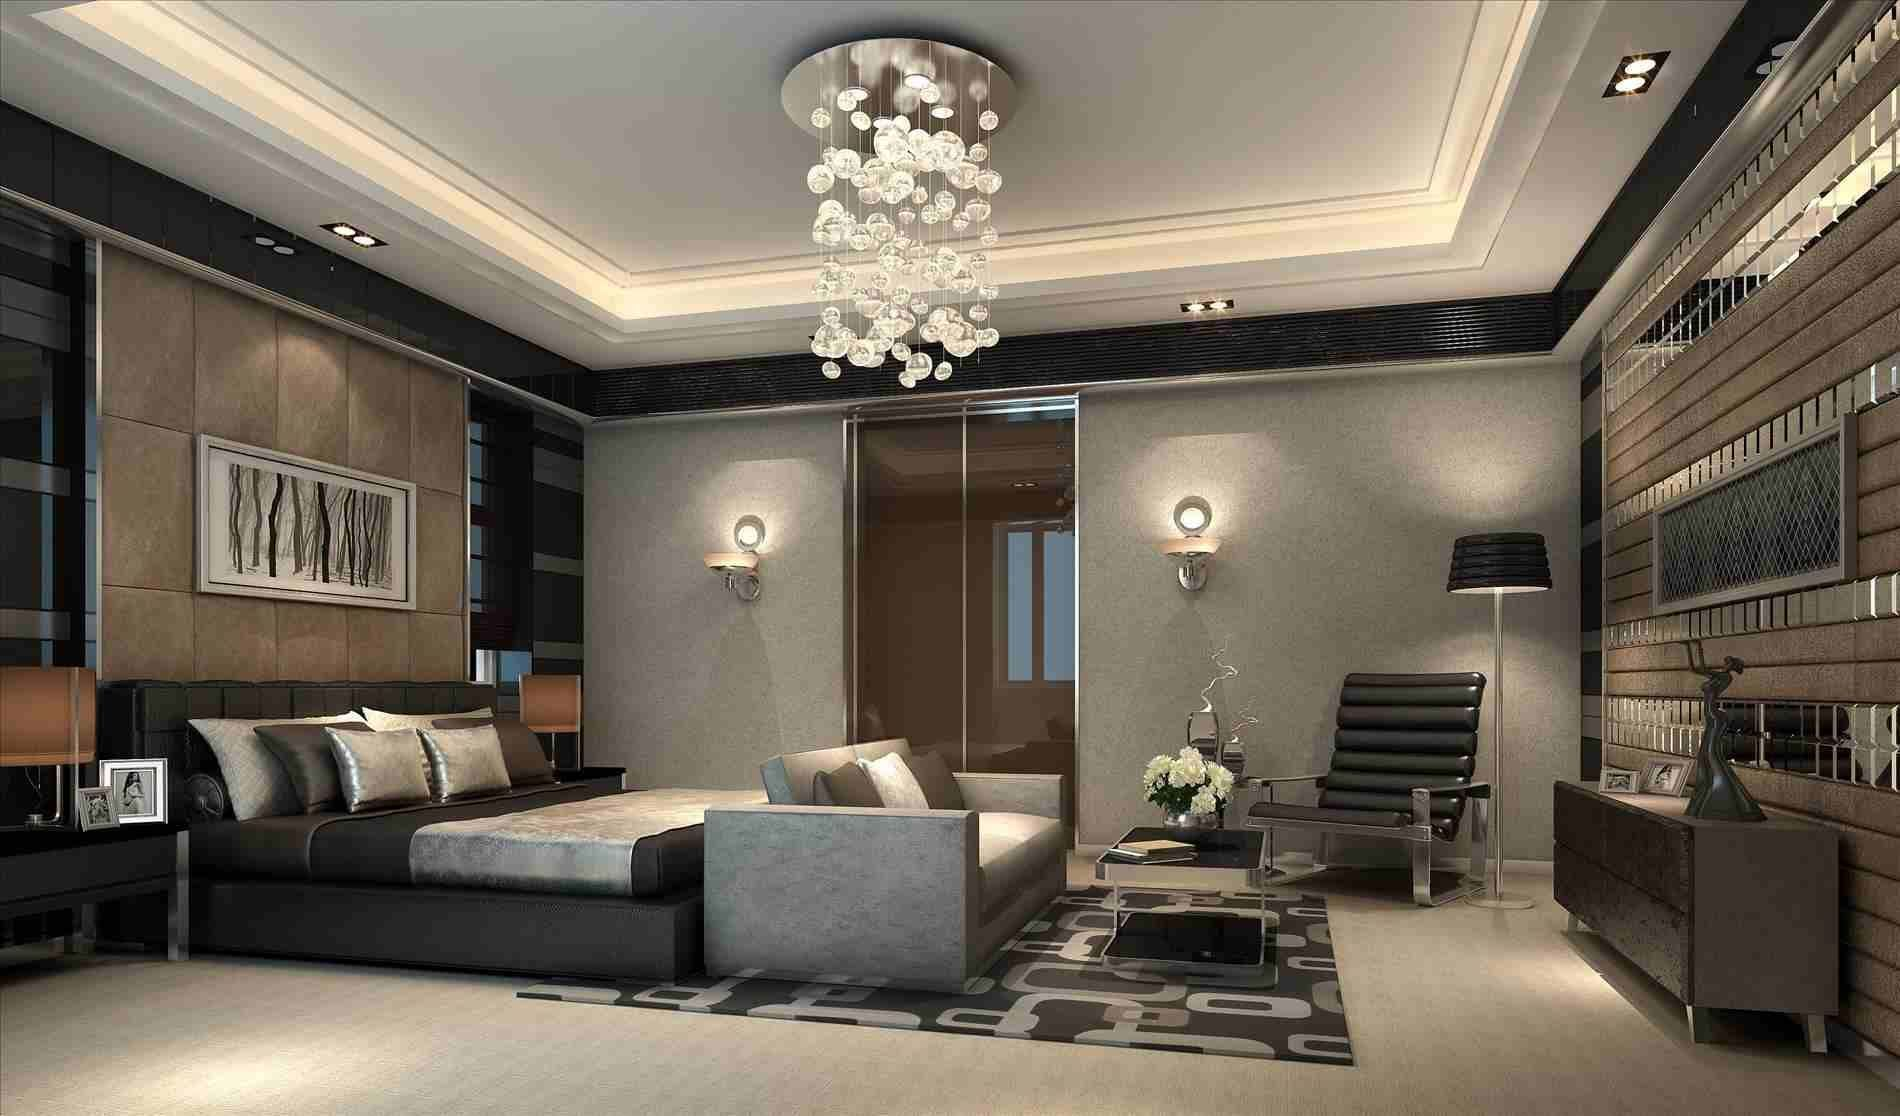 Impressive Big Bedroom Ideas Of Bedrooms Design Luxury Elegant Design Acnn Decor